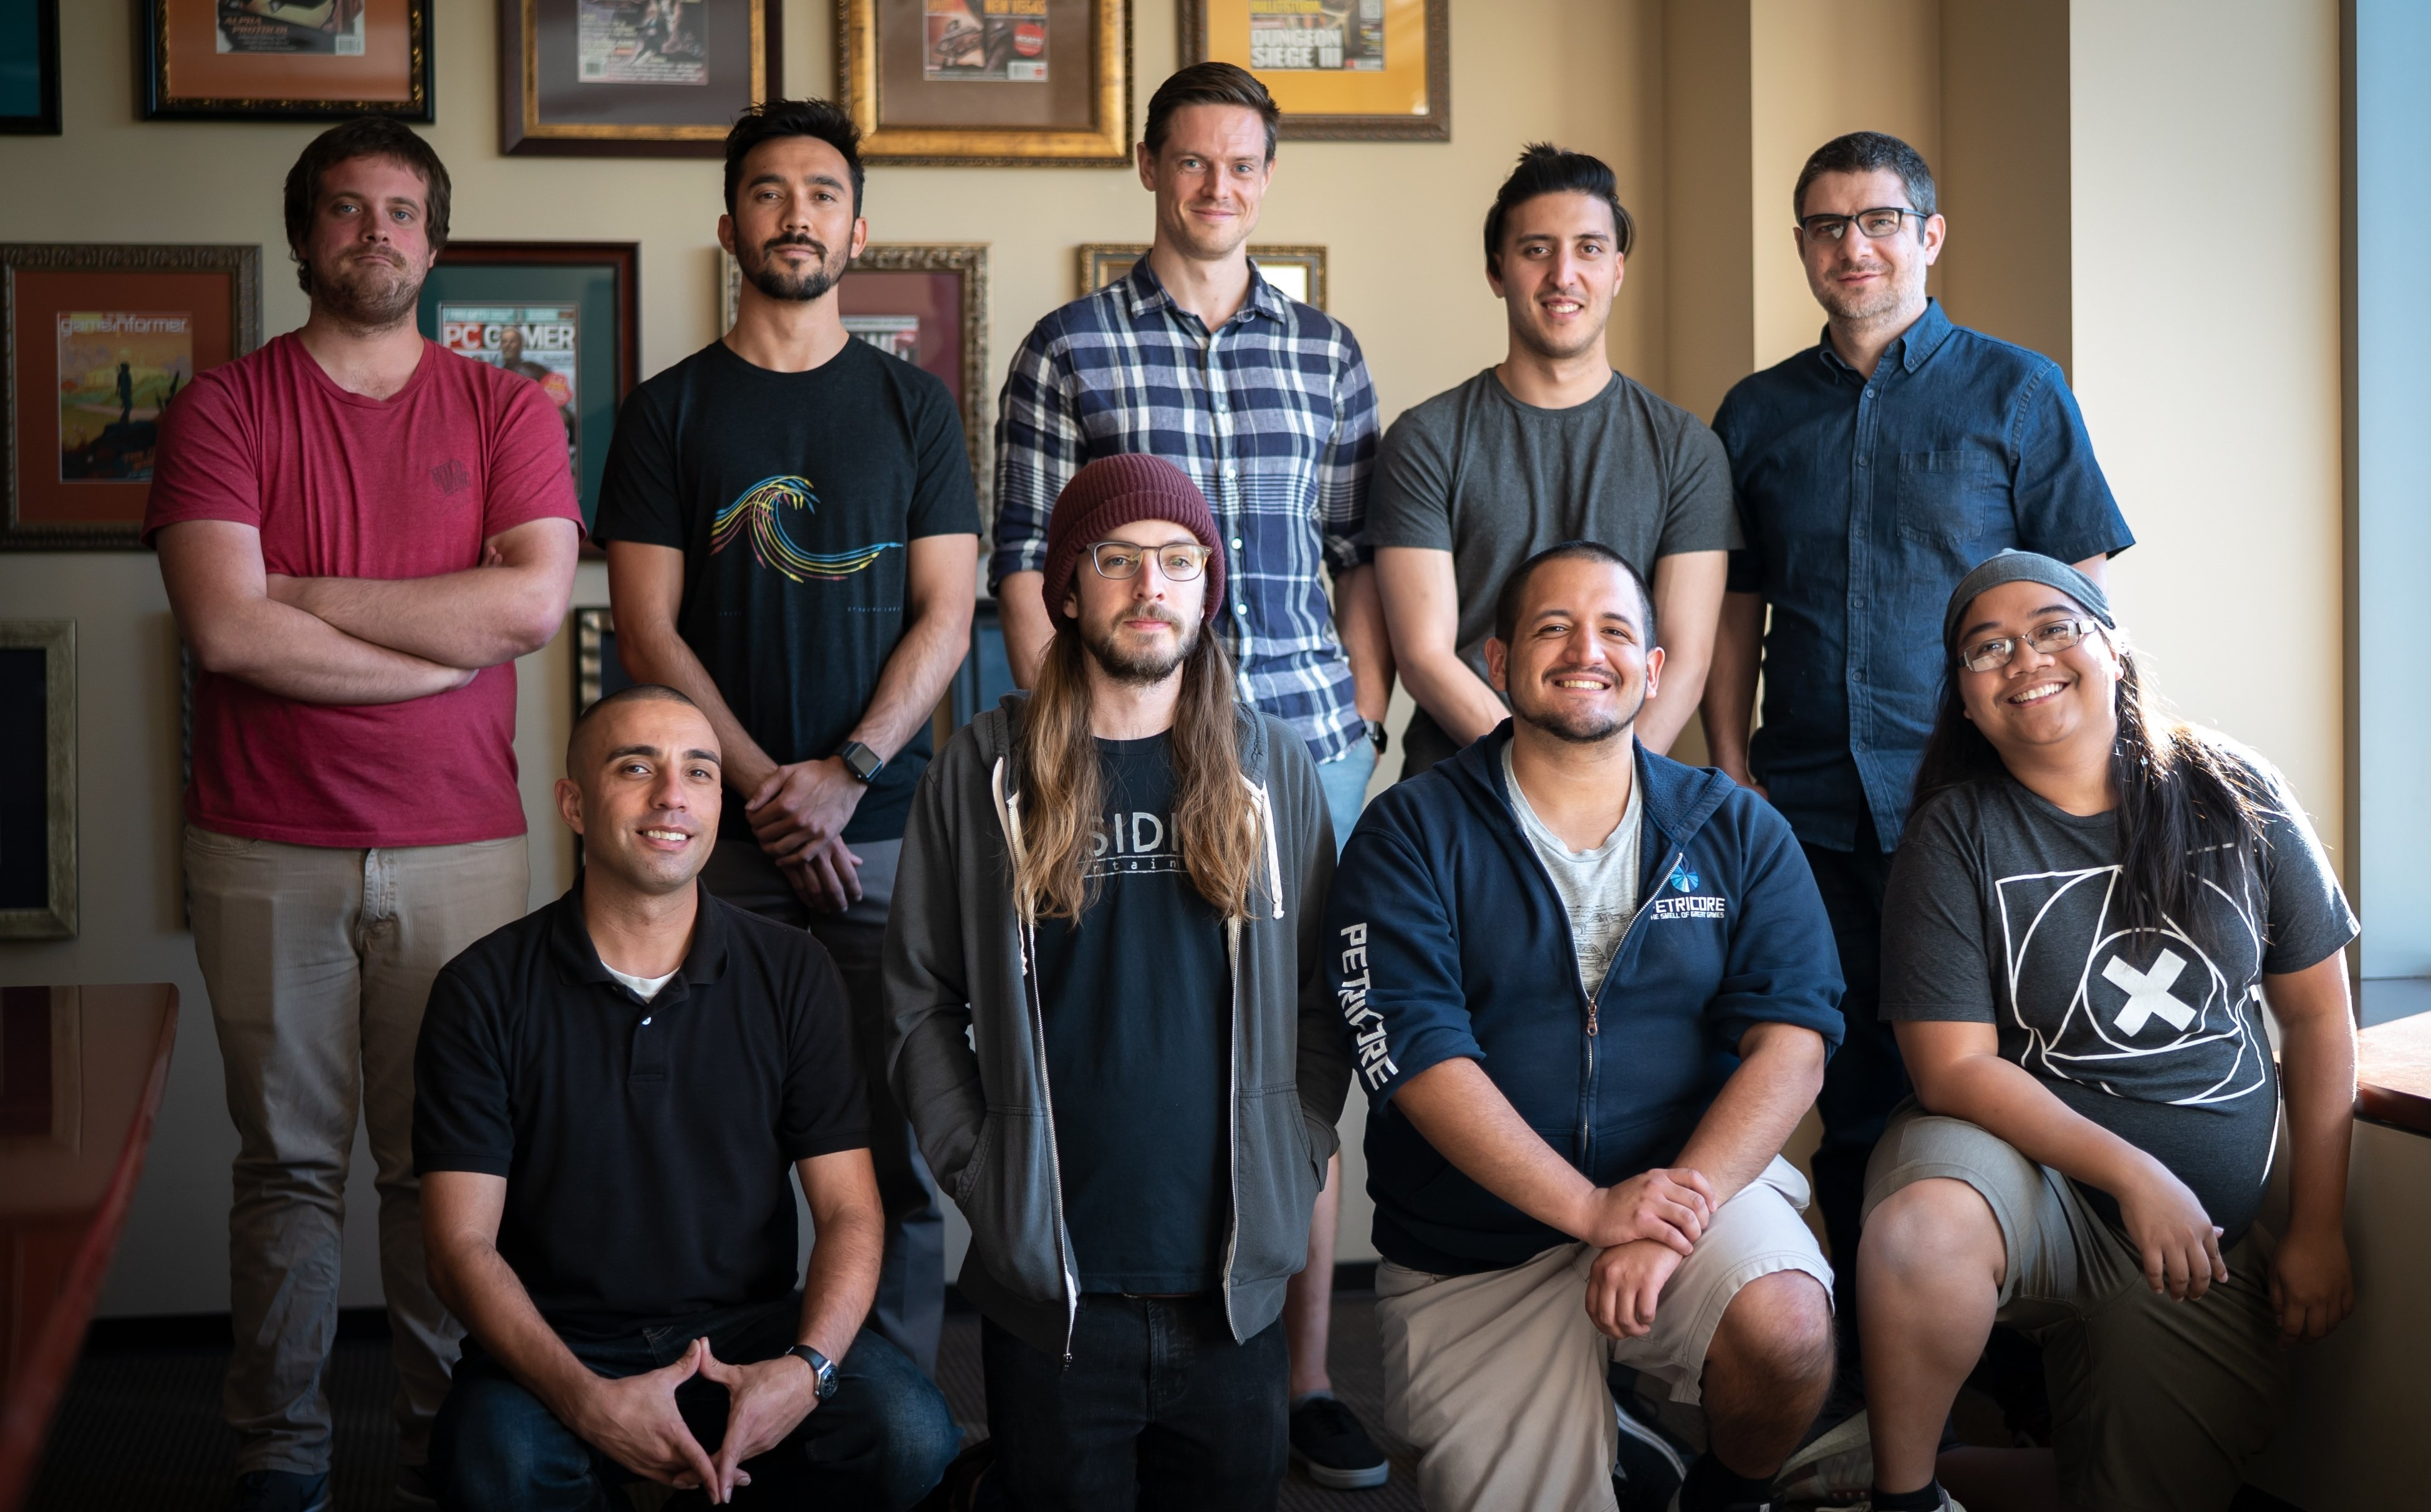 Renzo with the Audio Team at Obsidian Entertainment.